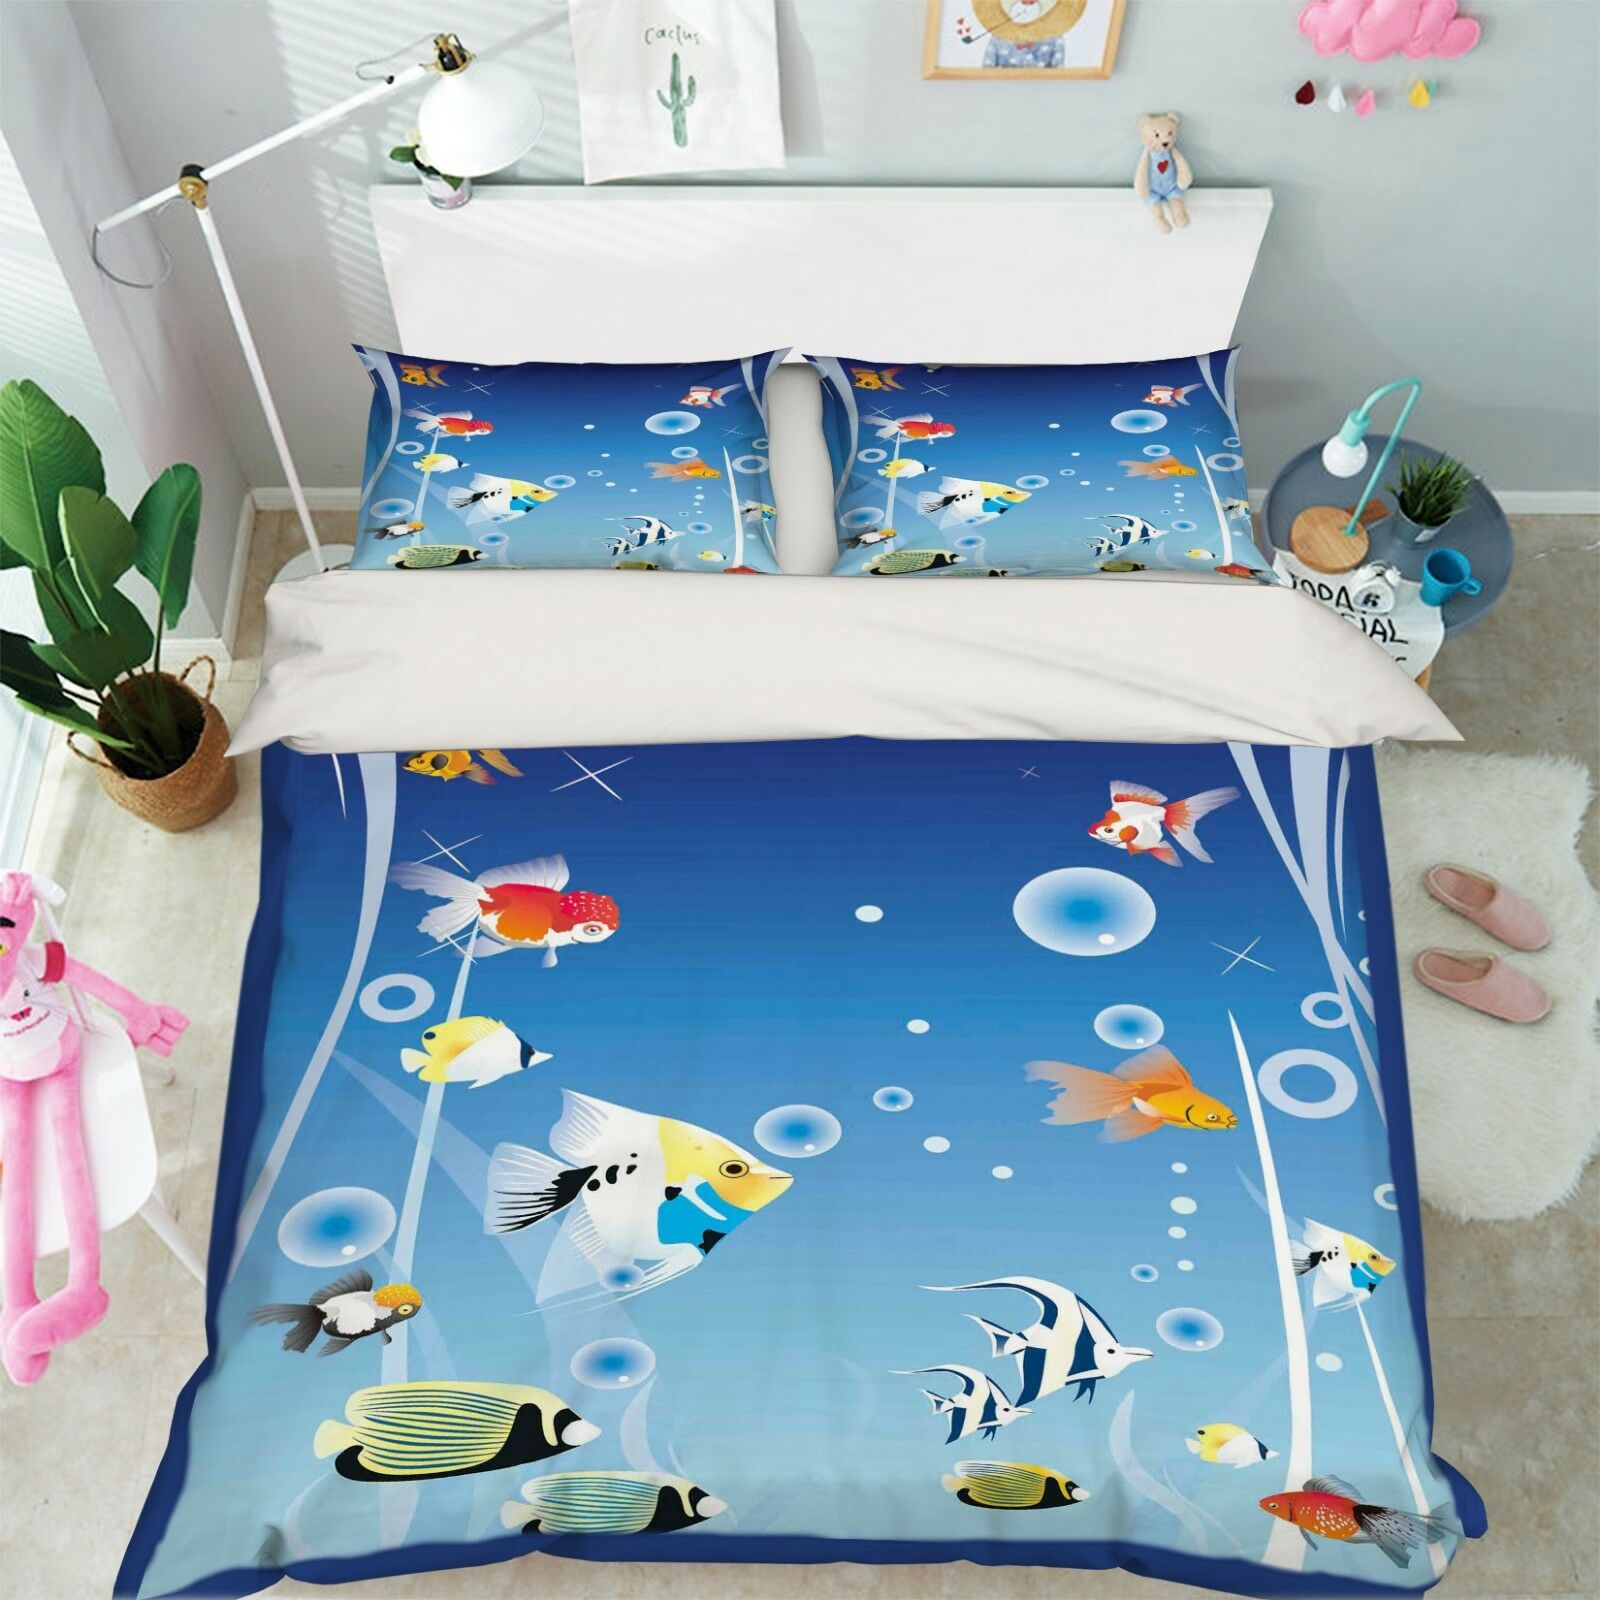 3D Marine Fish 575 Bed Pillowcases Quilt Duvet Cover Set Single Queen AU Carly